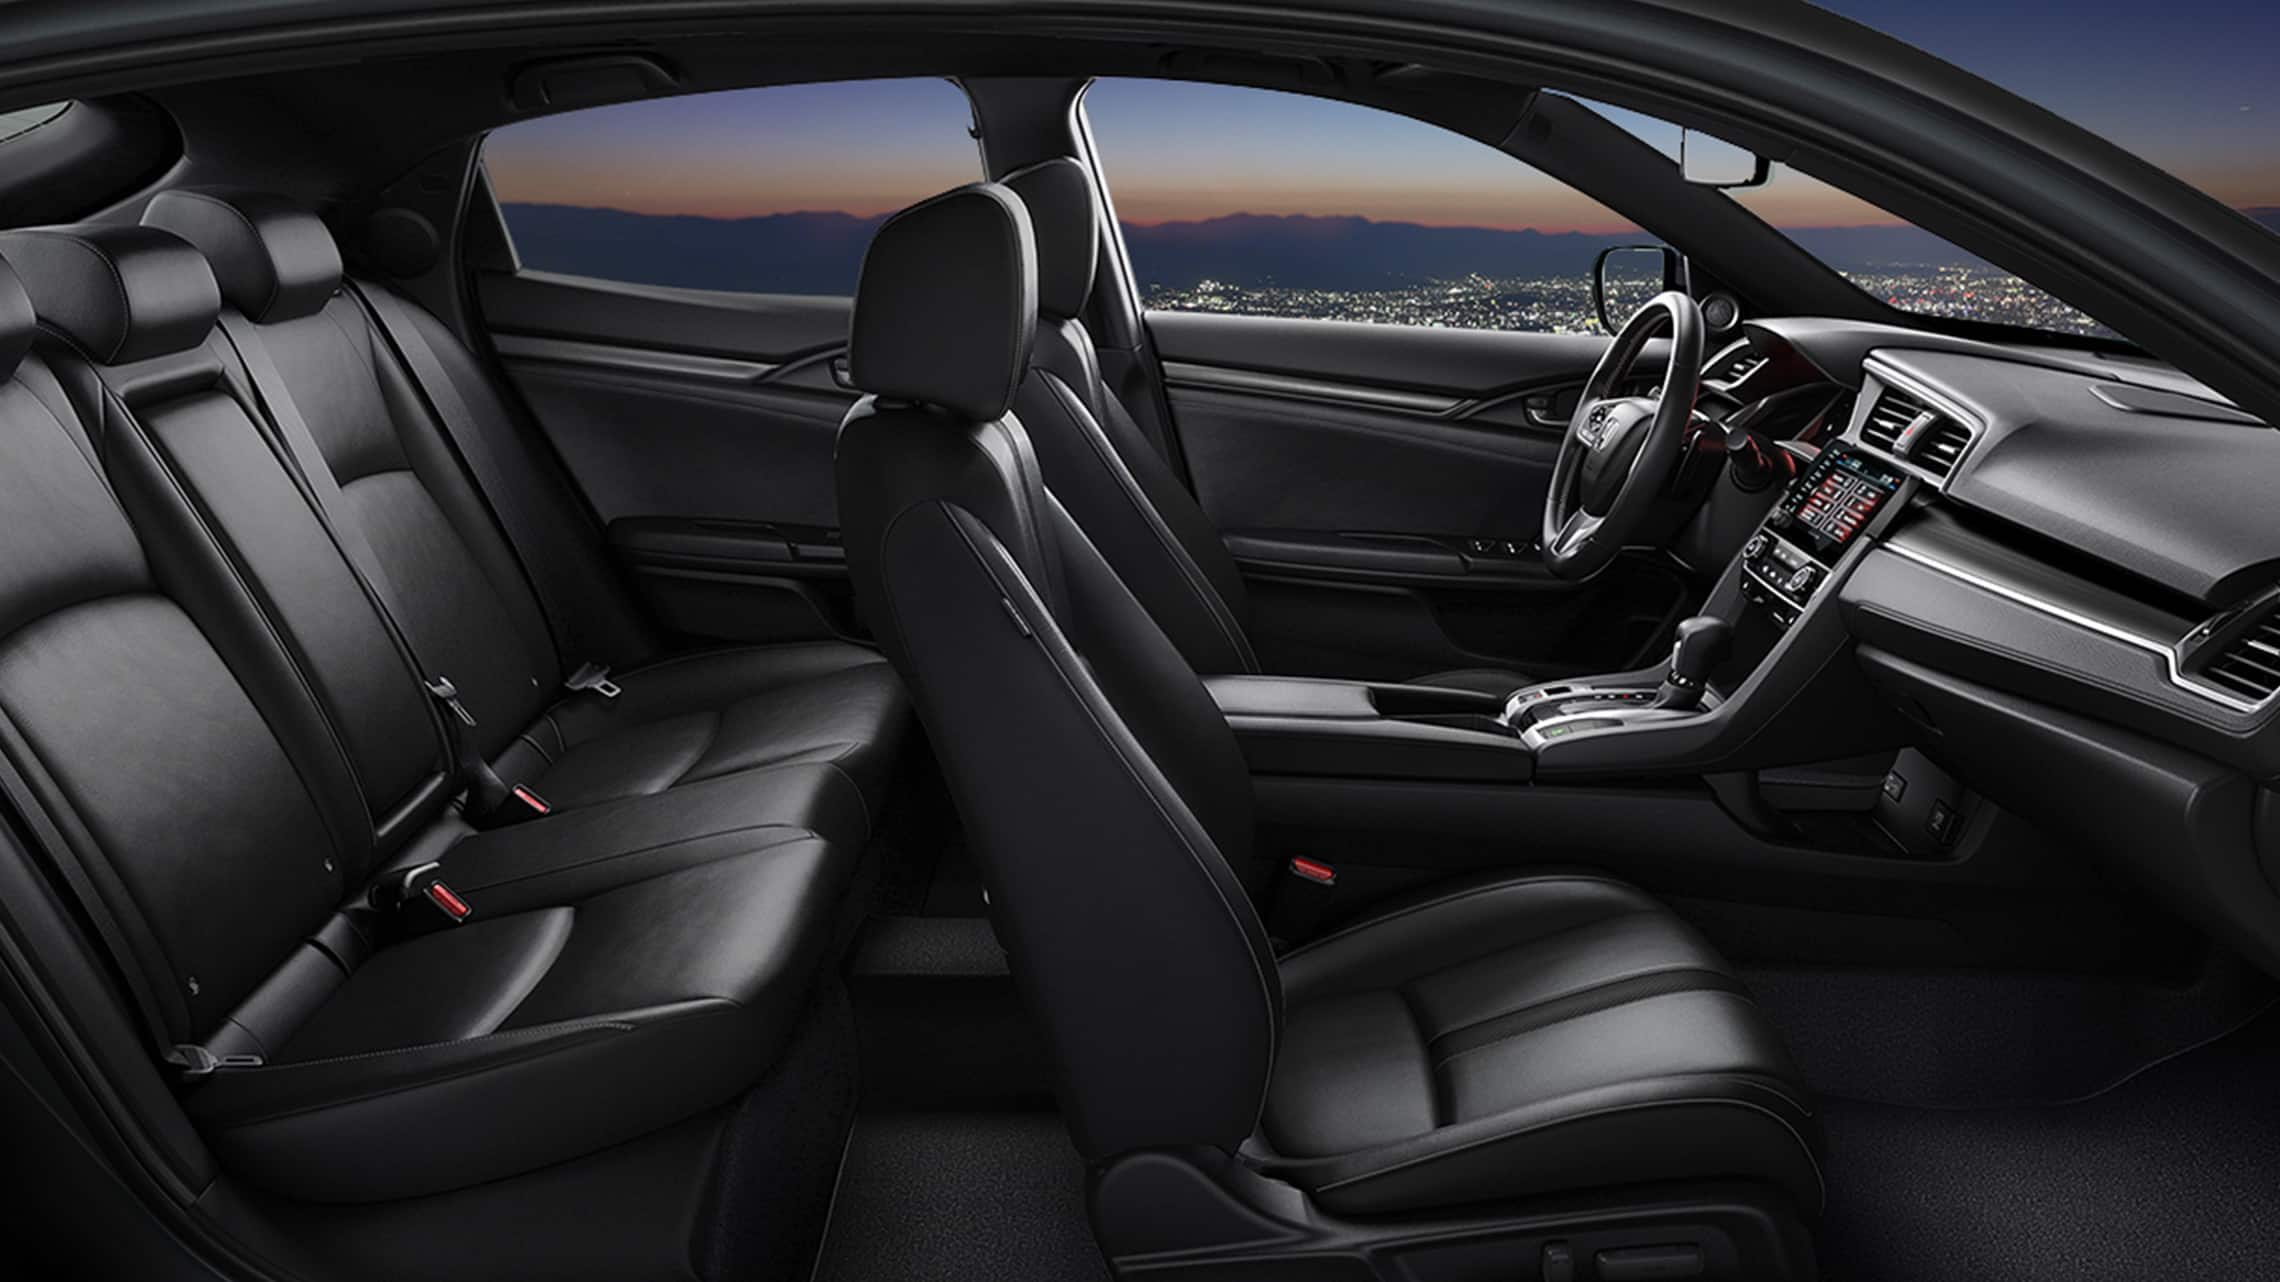 Vista de perfil desde el interior del lado del pasajero del Honda Civic Sport Touring Hatchback 2020 con Black Leather.